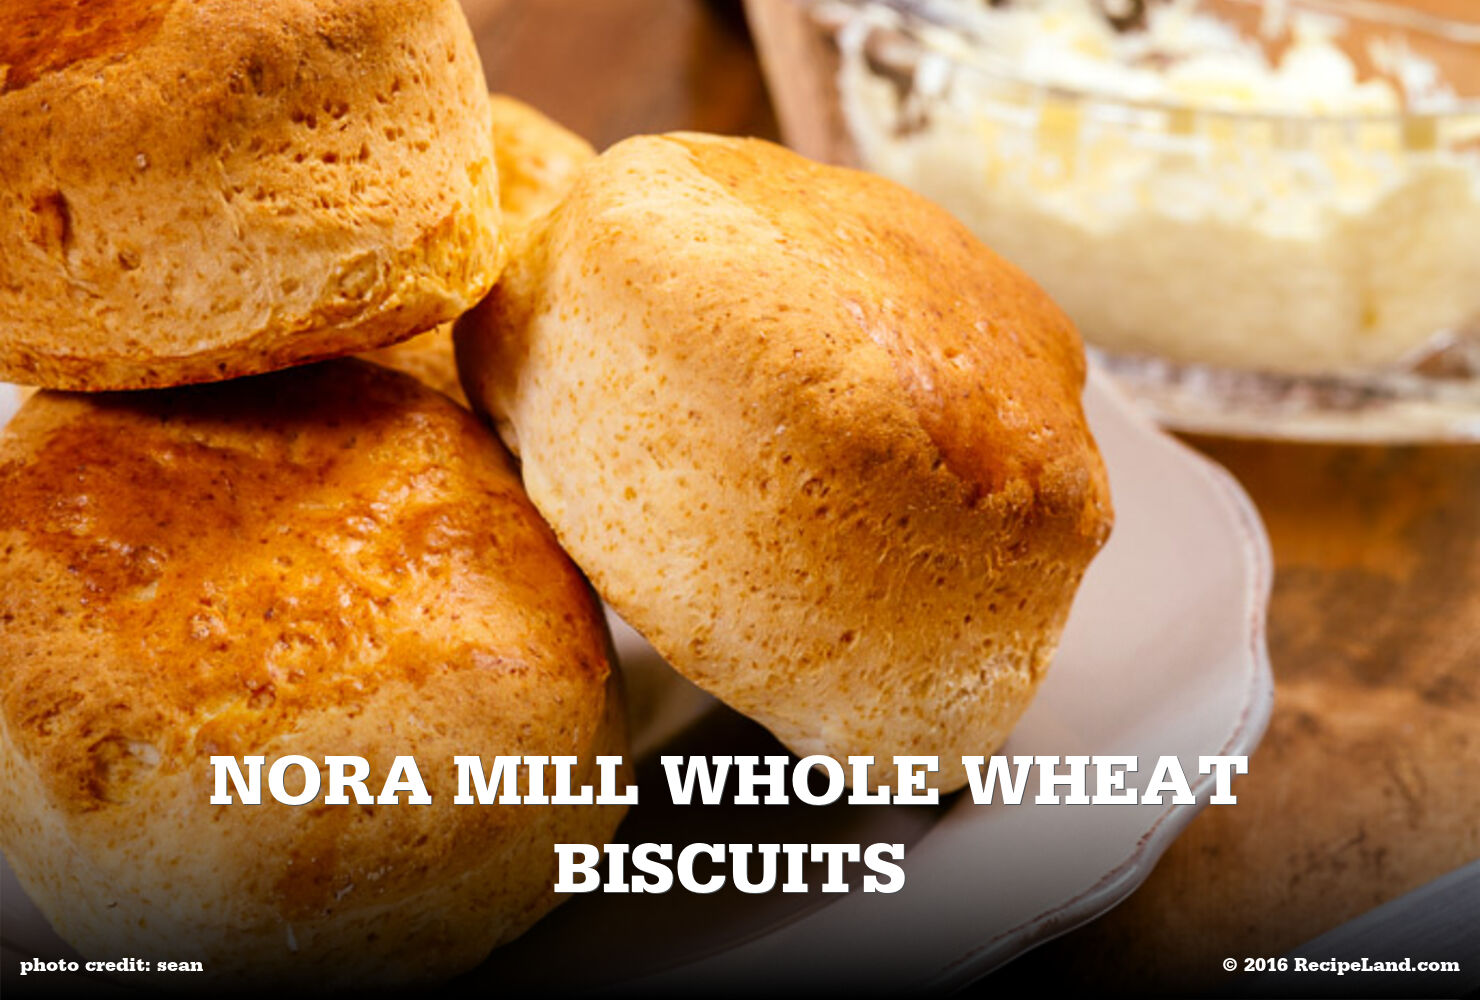 Nora Mill Whole Wheat Biscuits